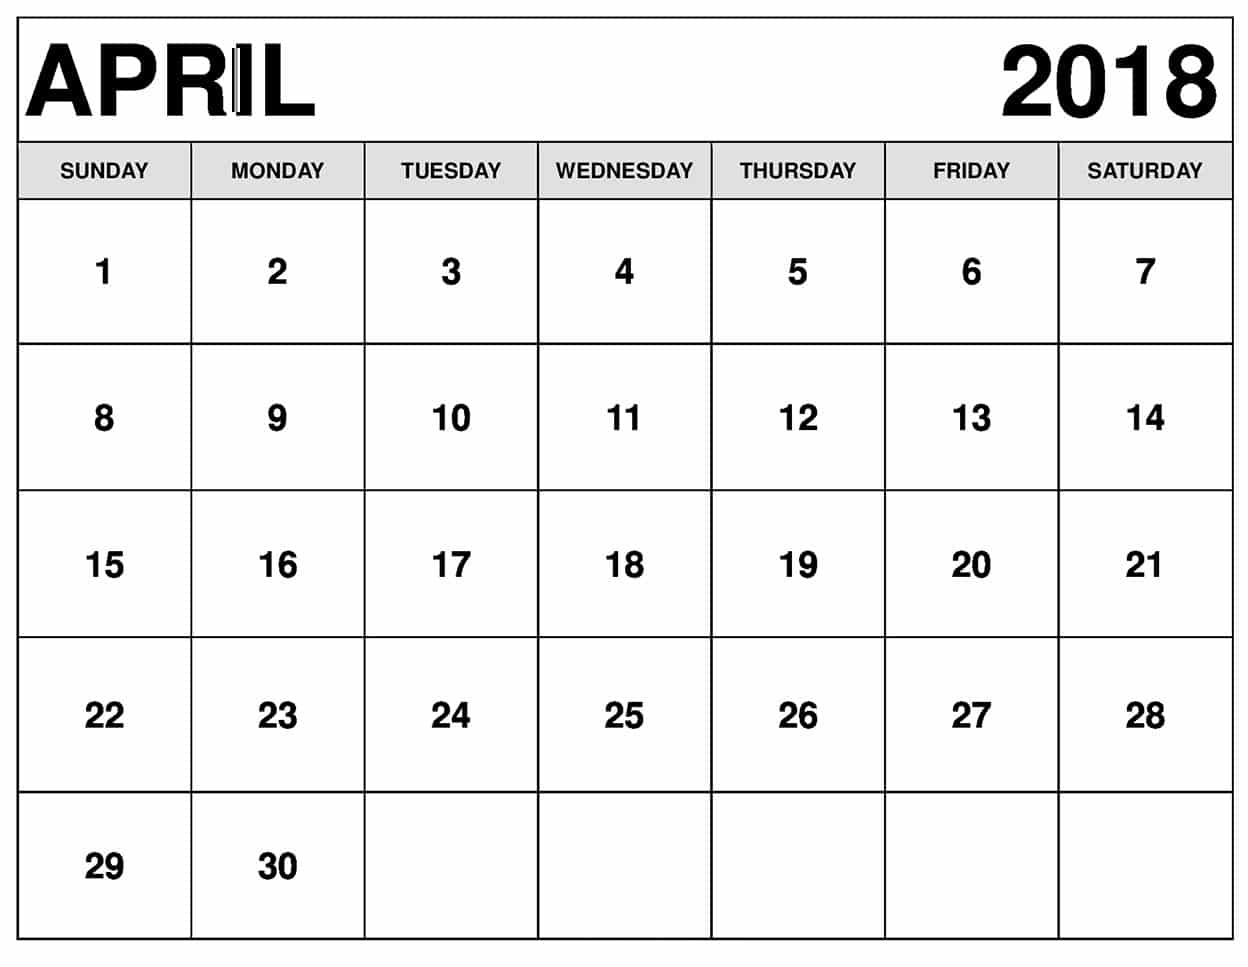 April 2018 Monthly Calendar